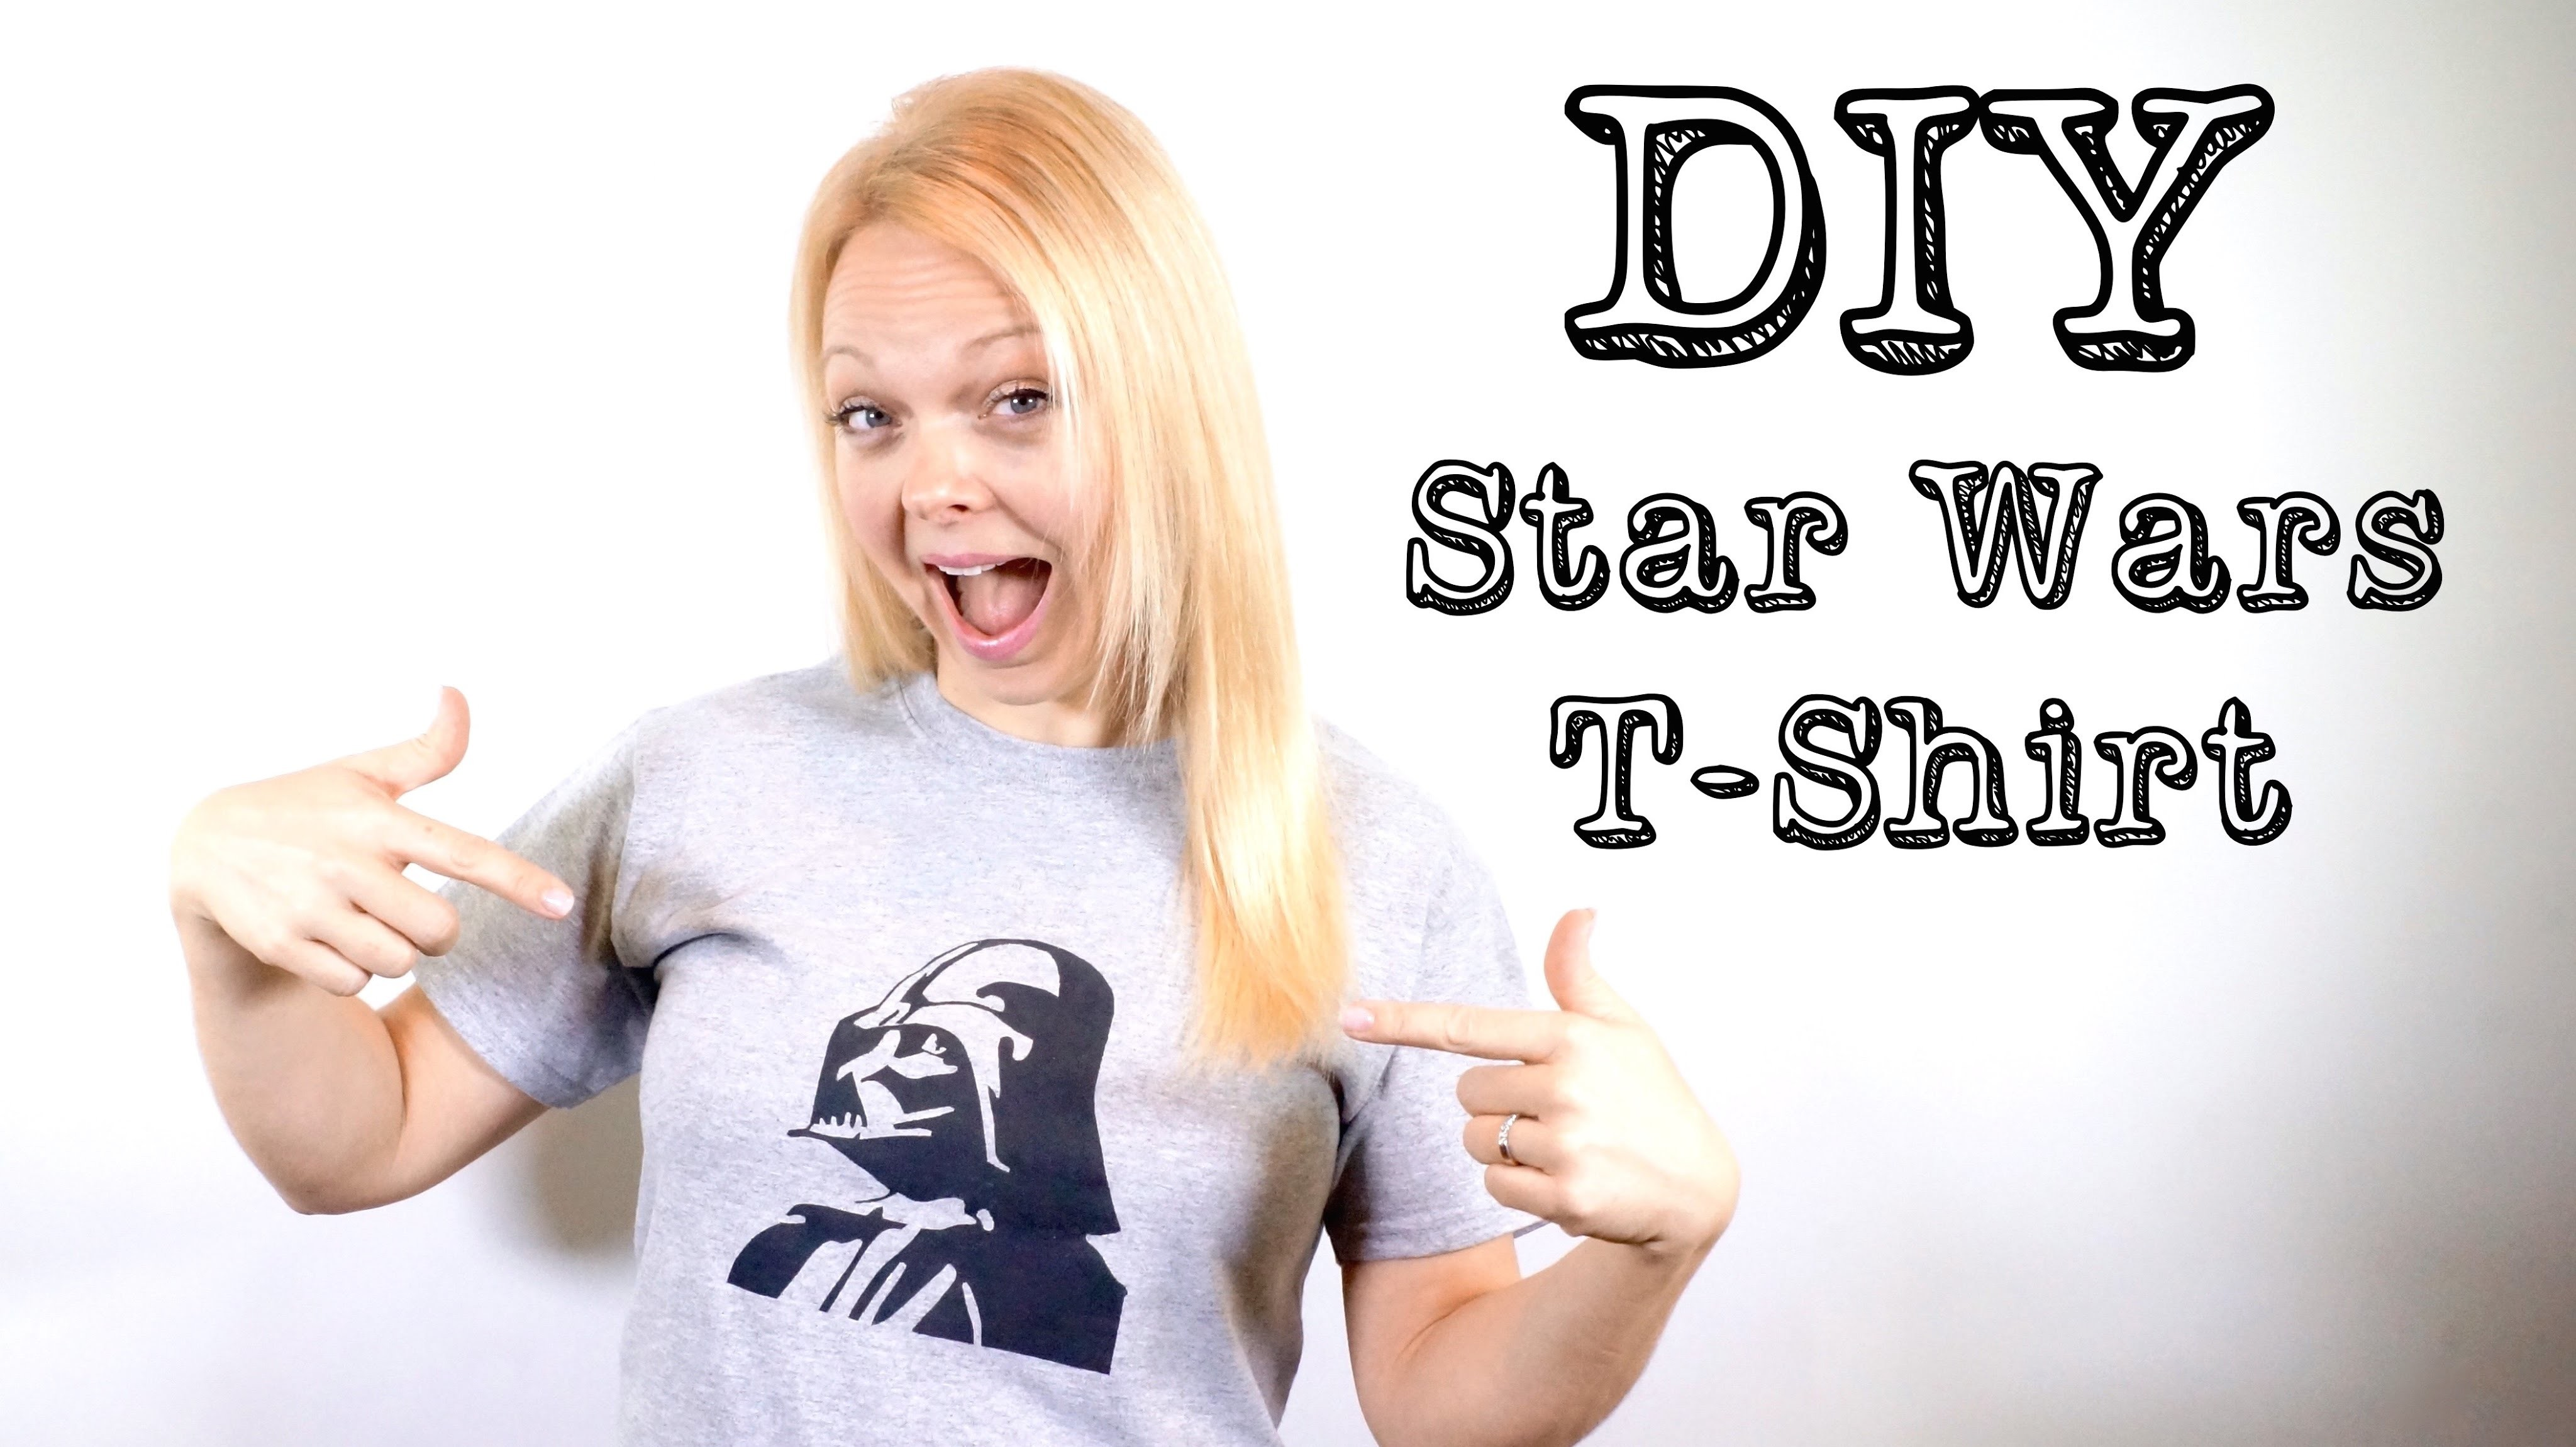 DIY Darth Vader. Star Wars T-shirt